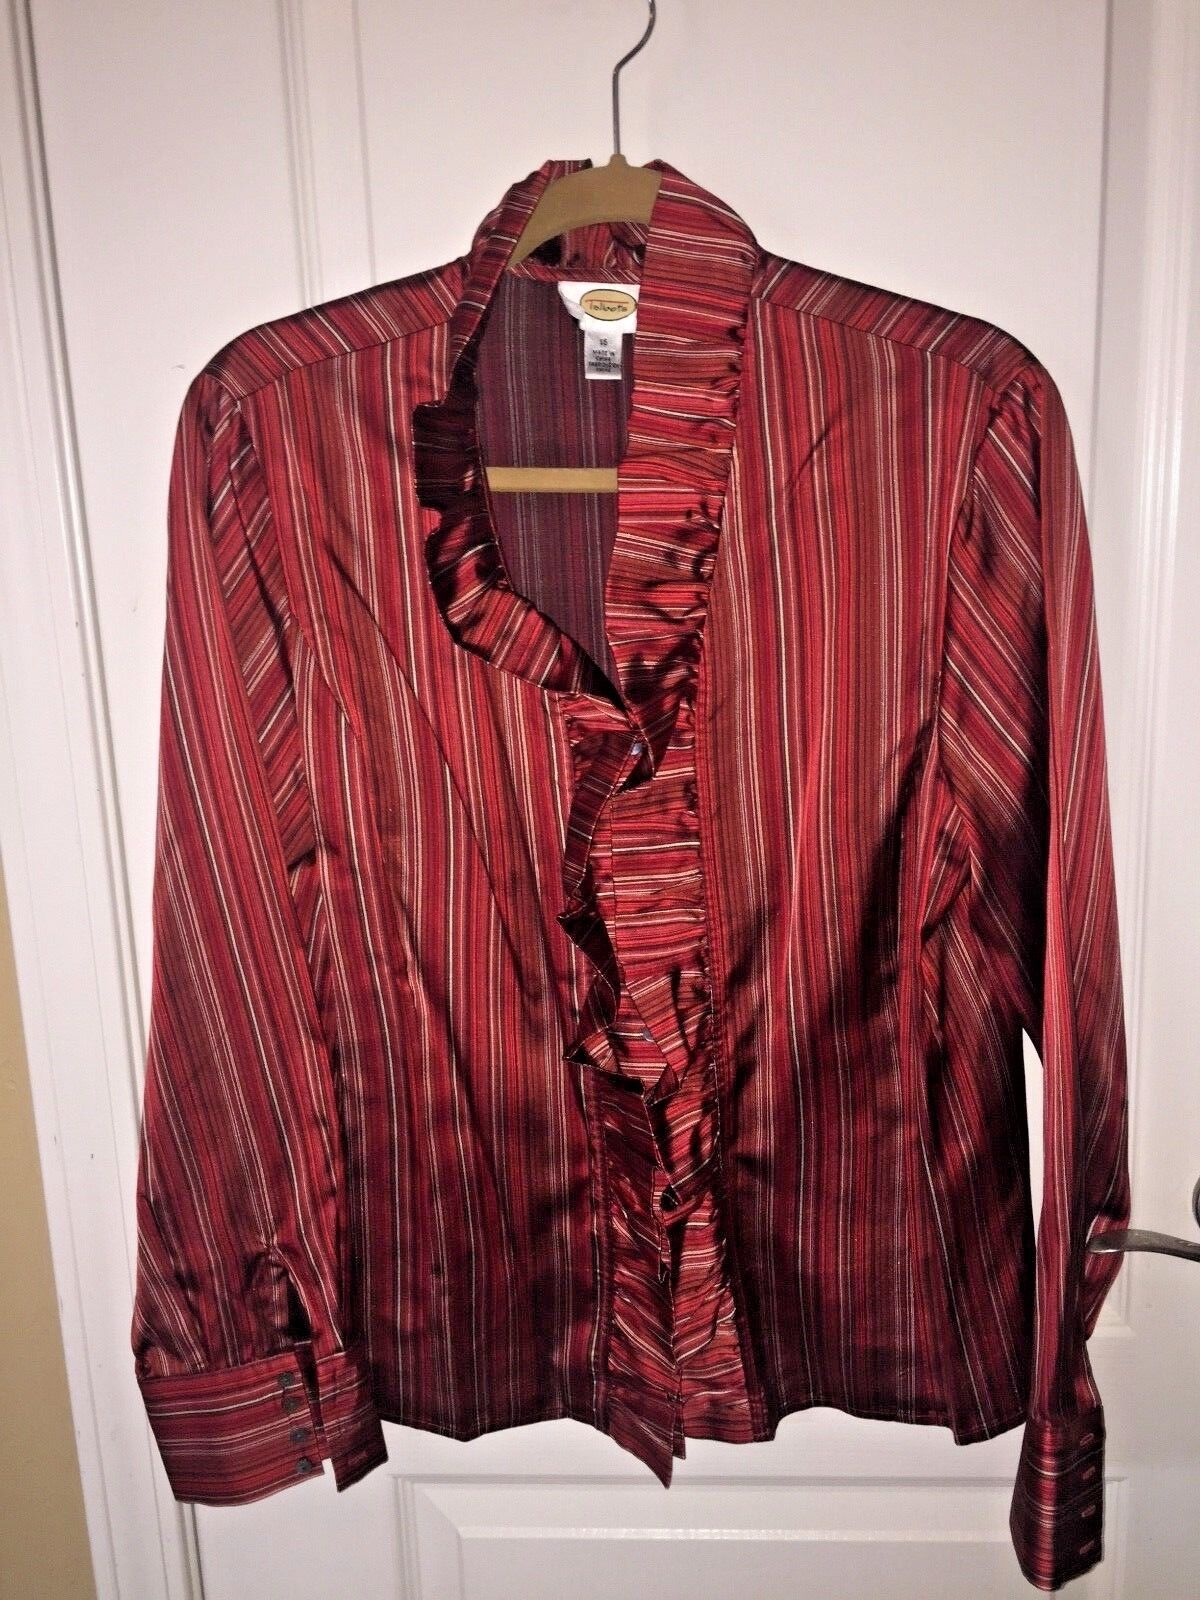 TALBOTS DRESS FORMAL OCCASION BLOUSE rot STRIPE RUFFLED COLLAR AND FRONT Größe 16